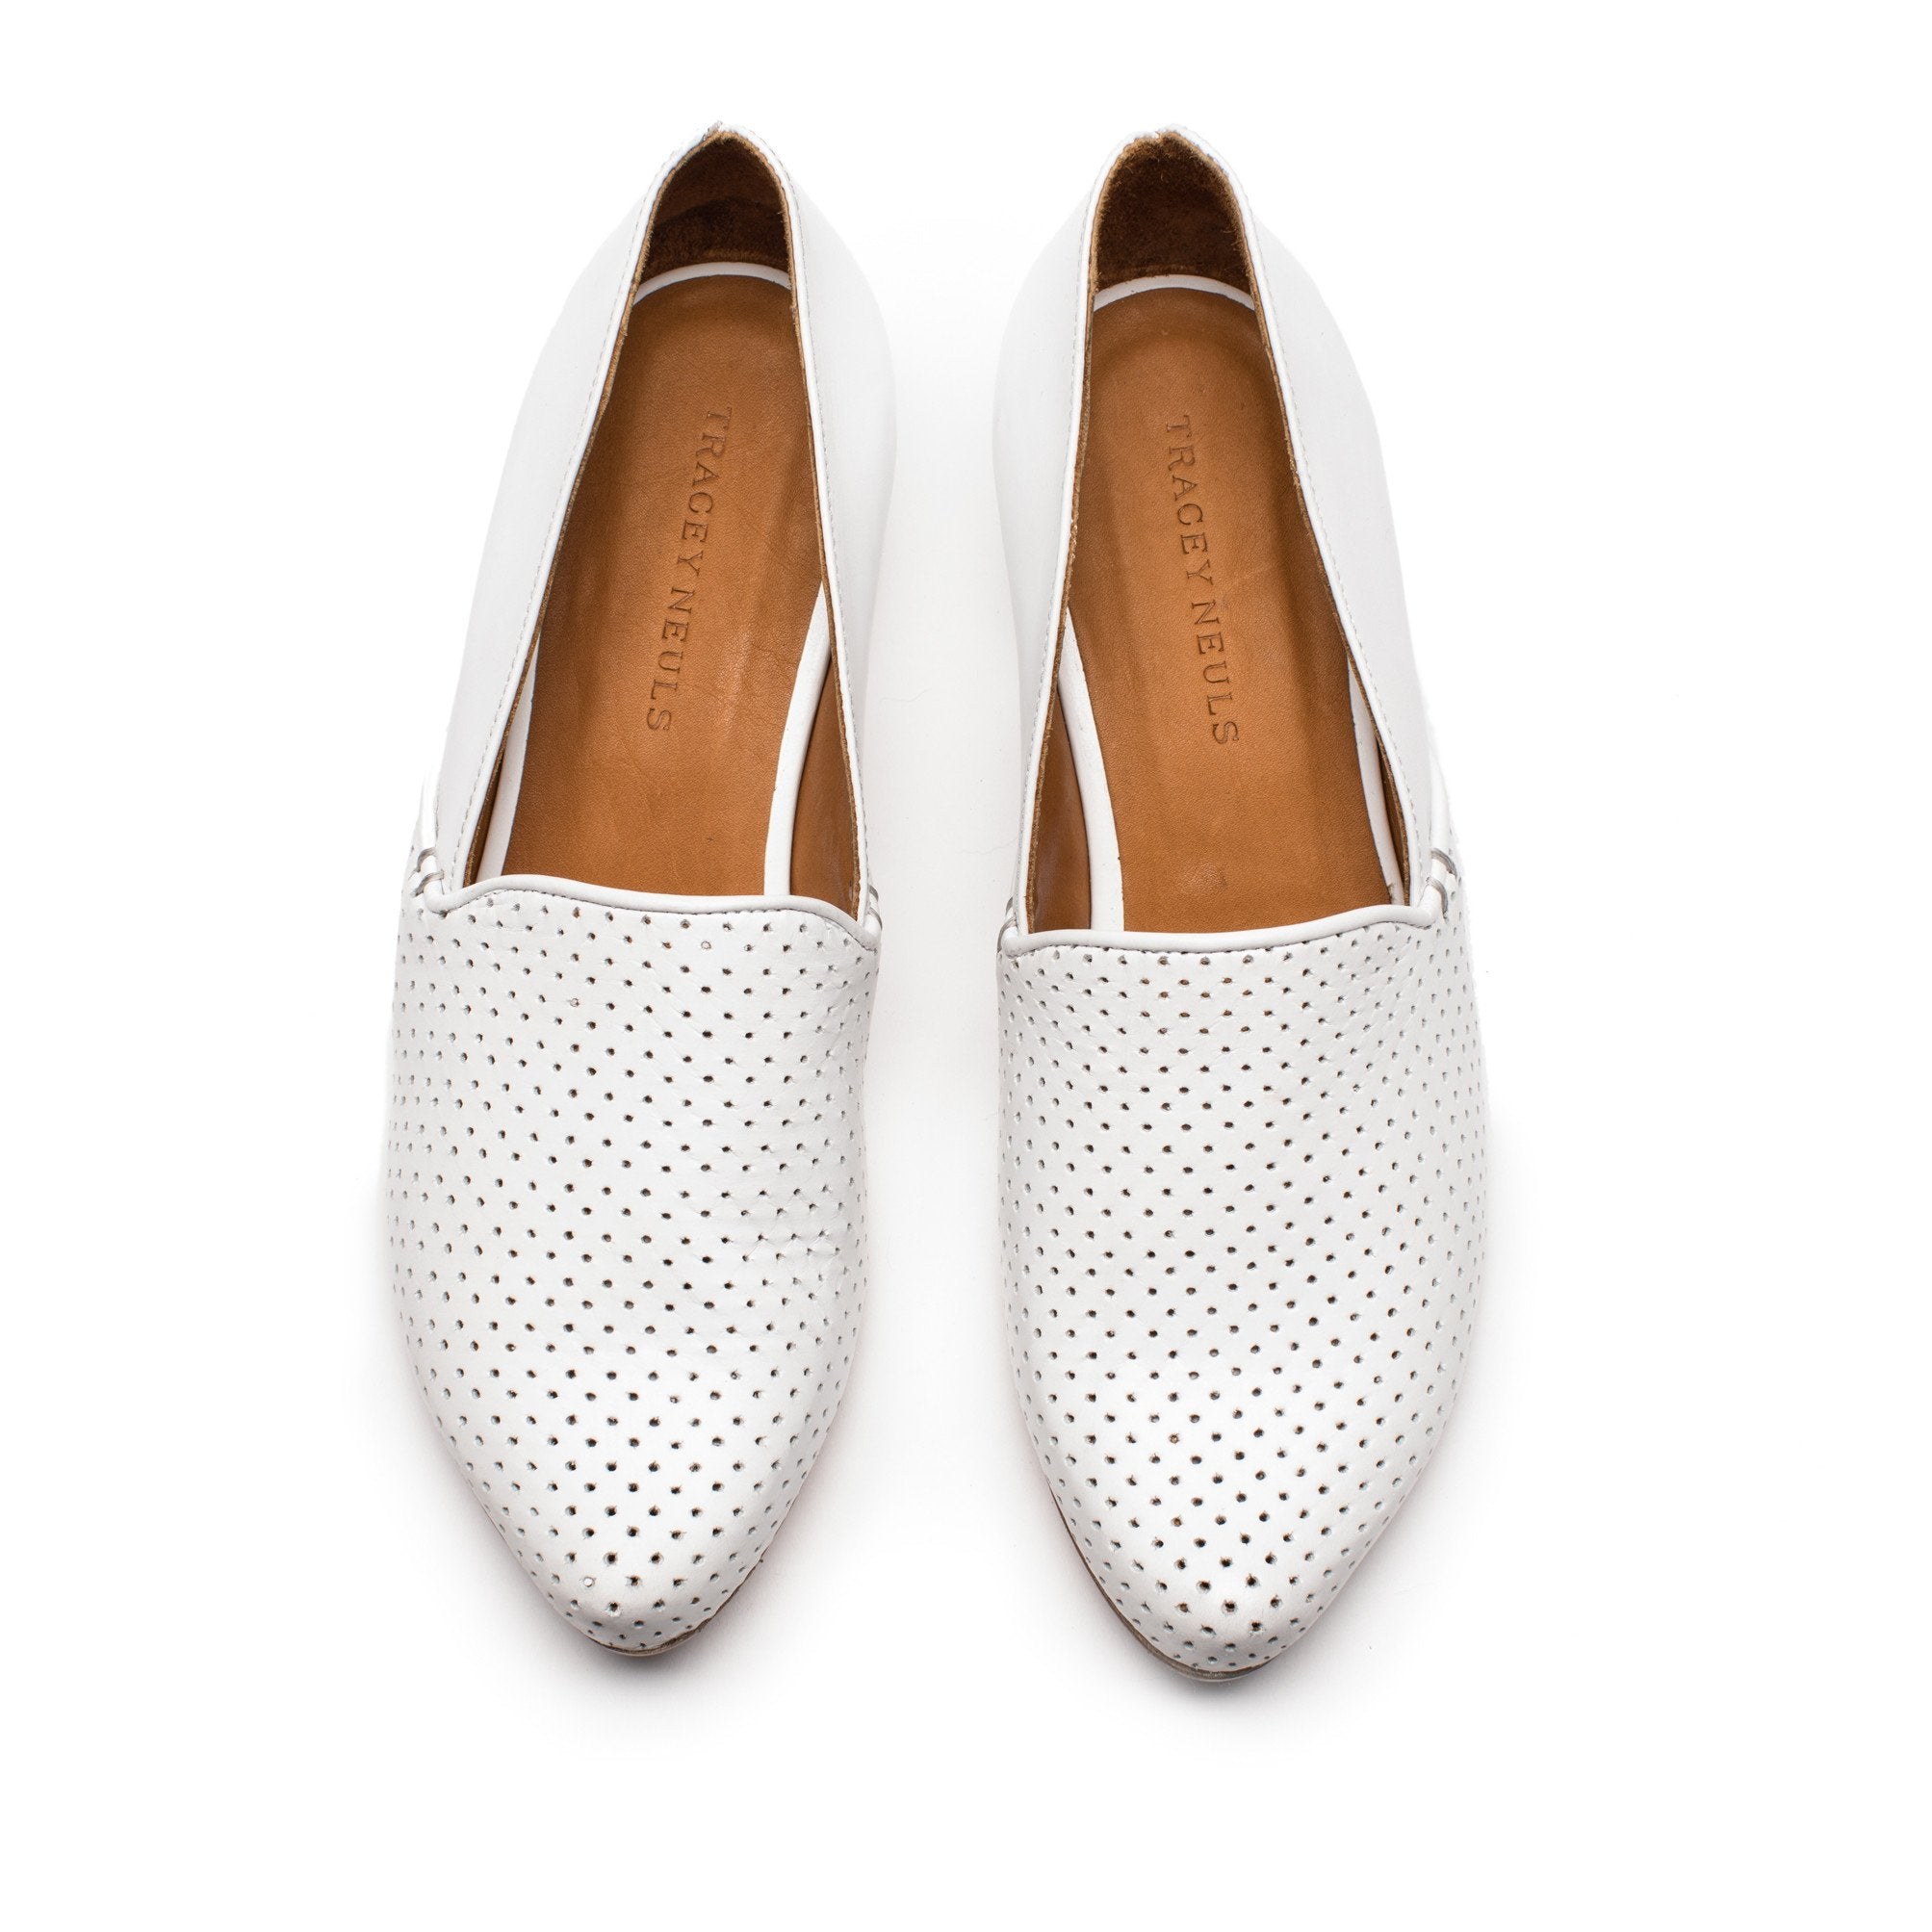 012caf81c32 ... RAY White Perforated Leather Mid Heel Loafer